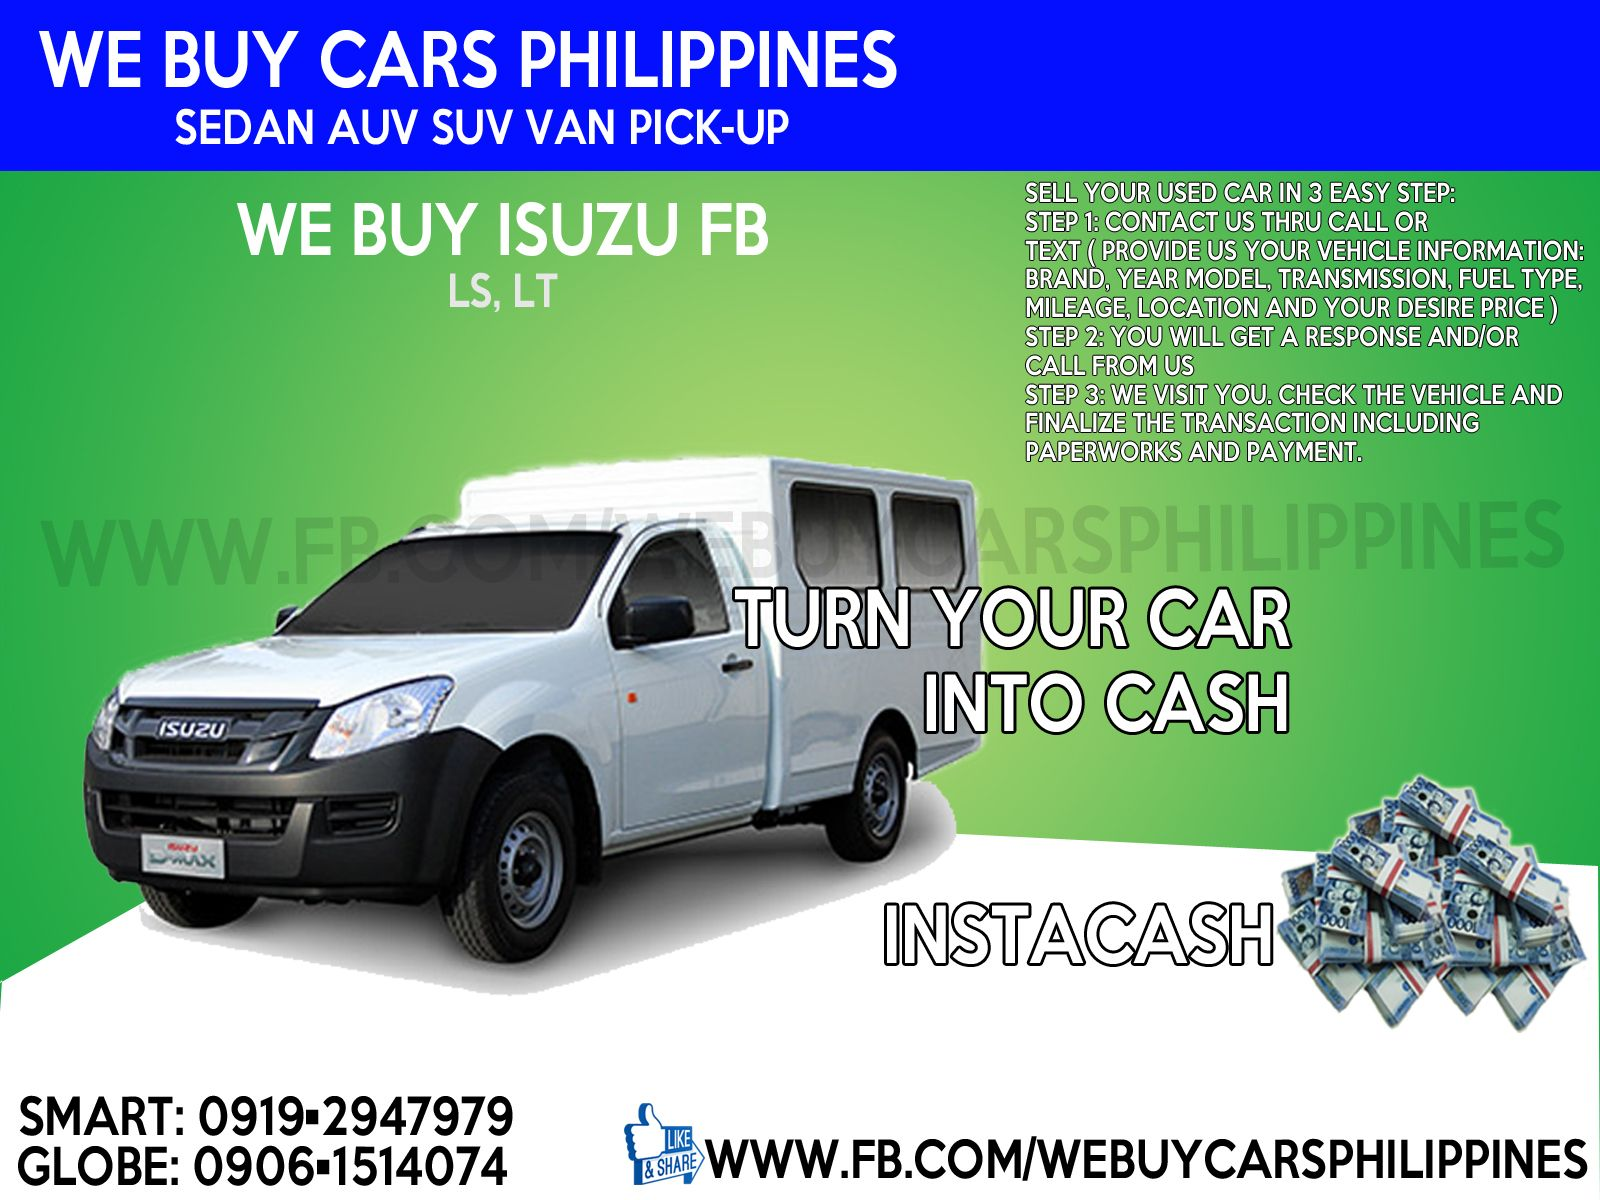 We Buy Used Isuzu Car Philippines Dmax Fb Flexiqube Buying Used